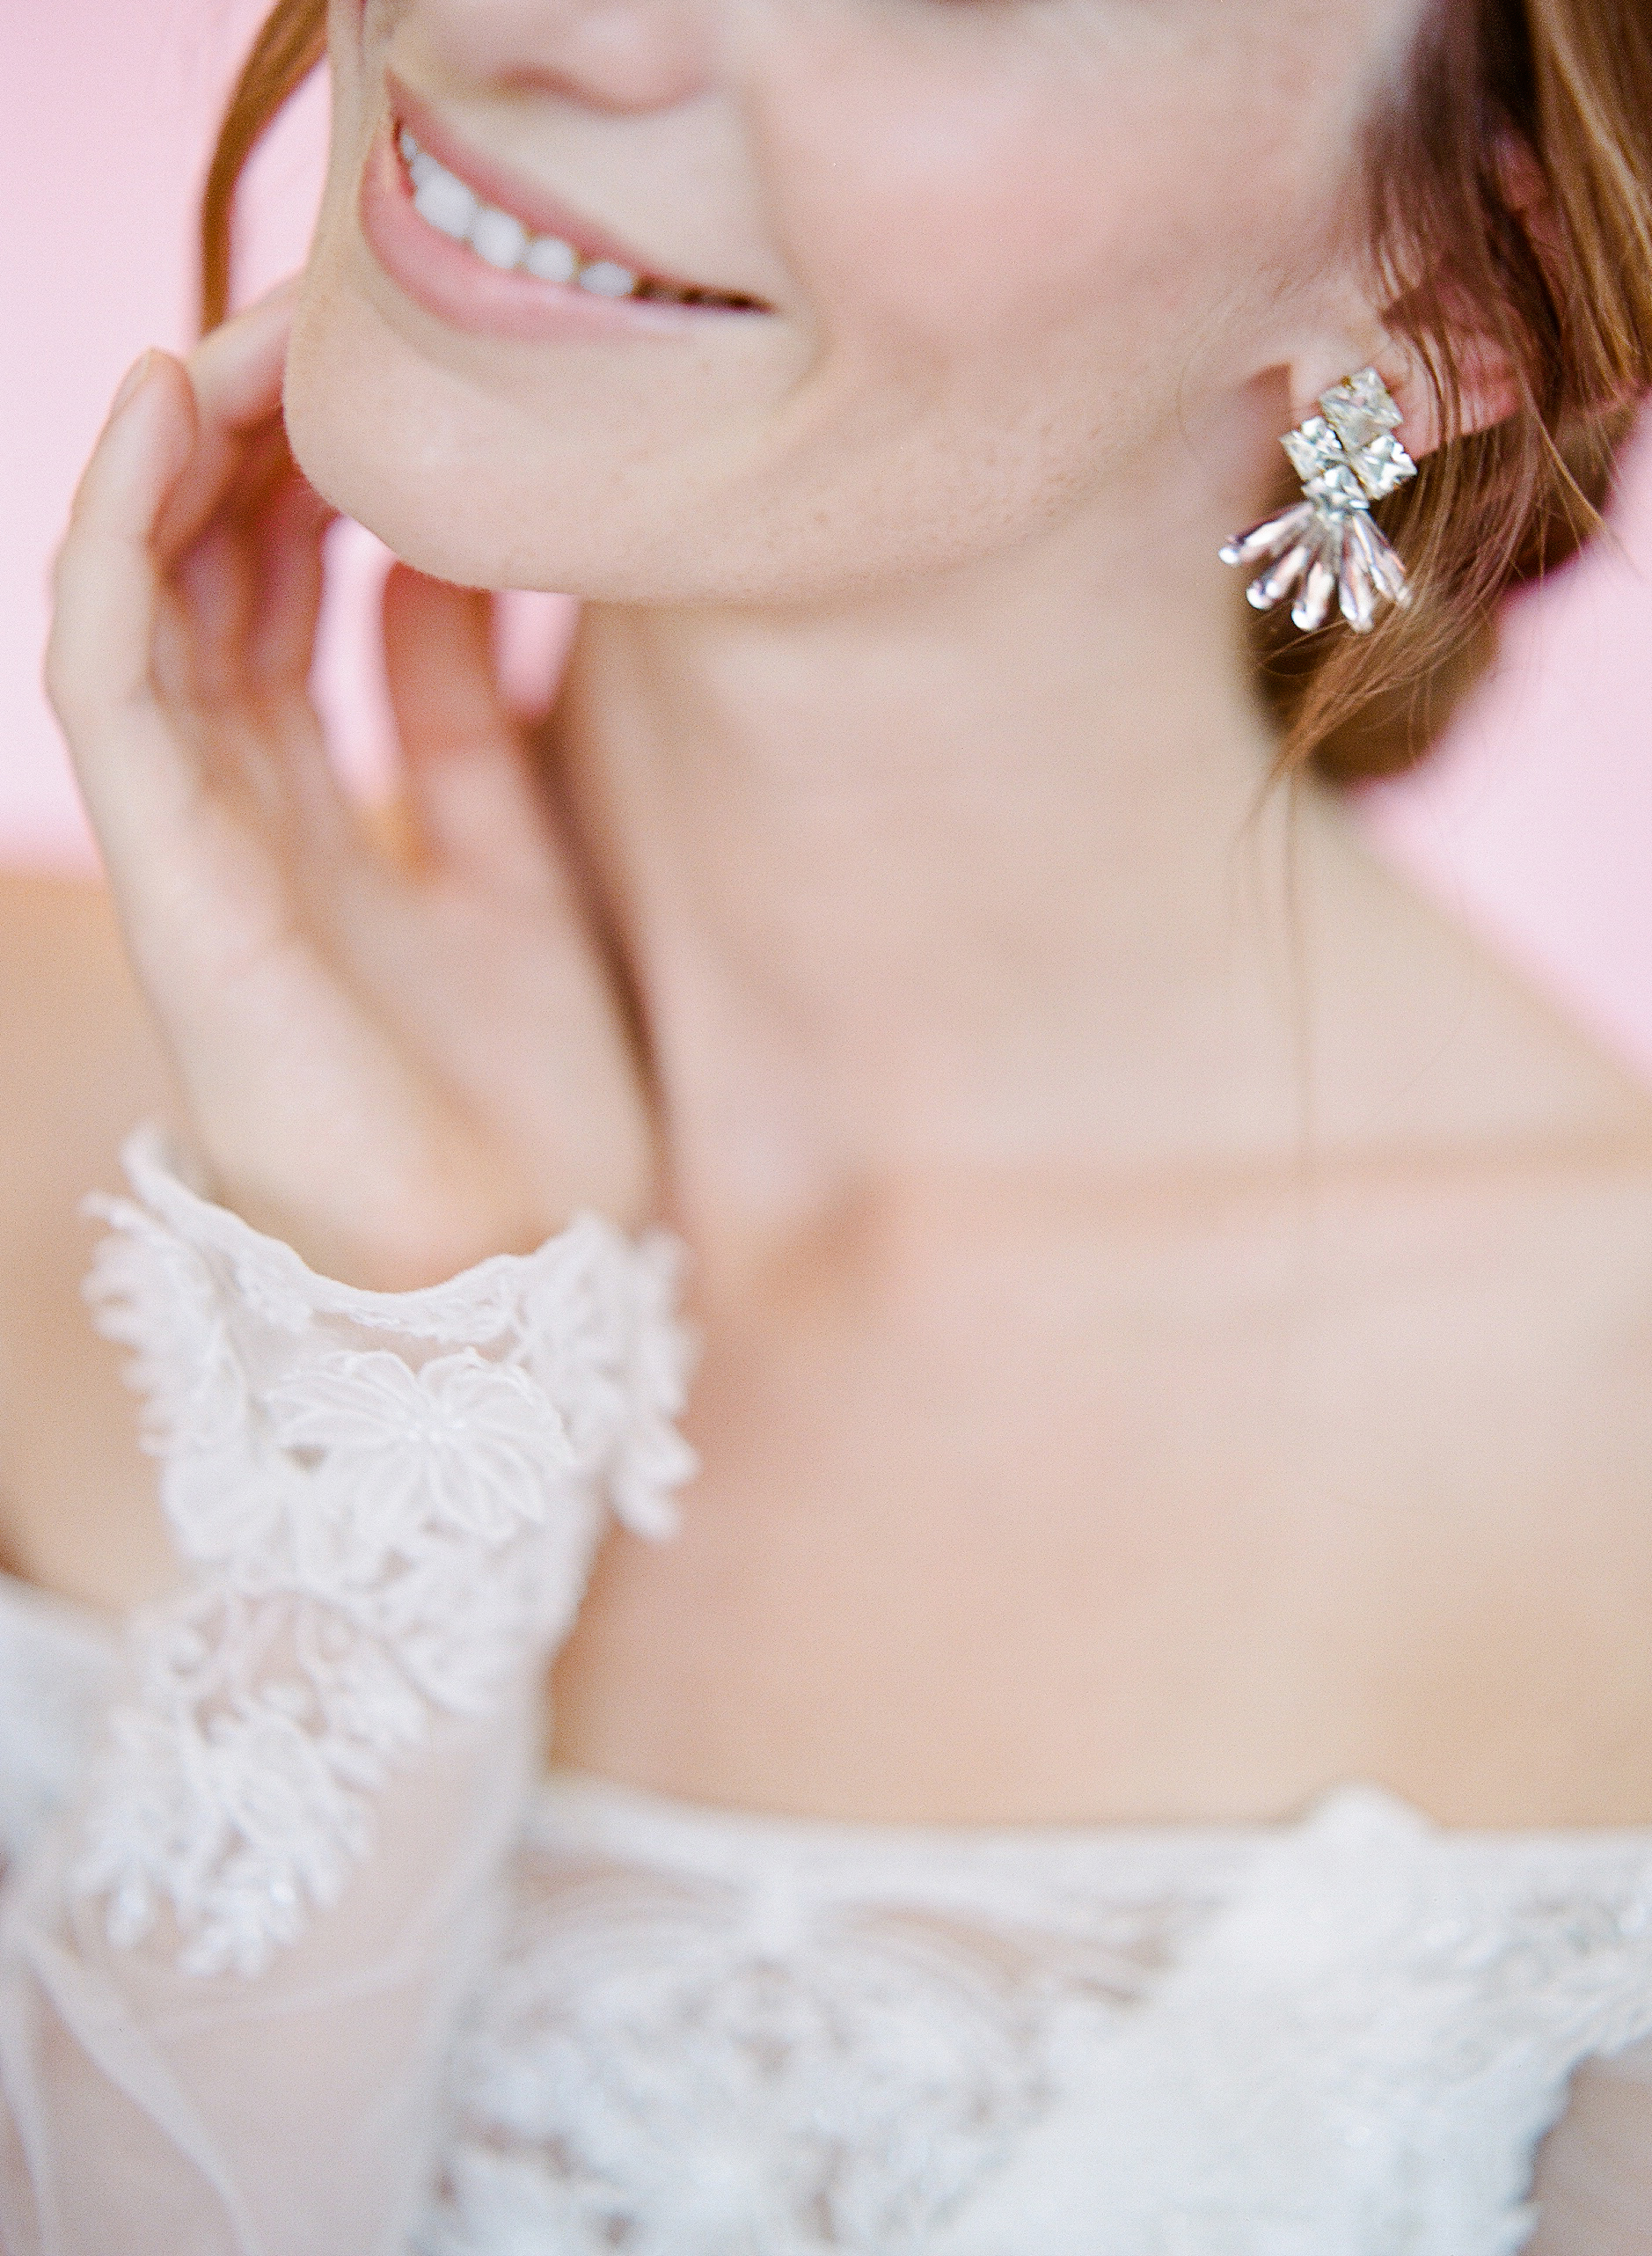 Hushed+Commotion+2018,+Rebecca+Yale,+art+deco+crystal+wedding+earring+detail.jpg